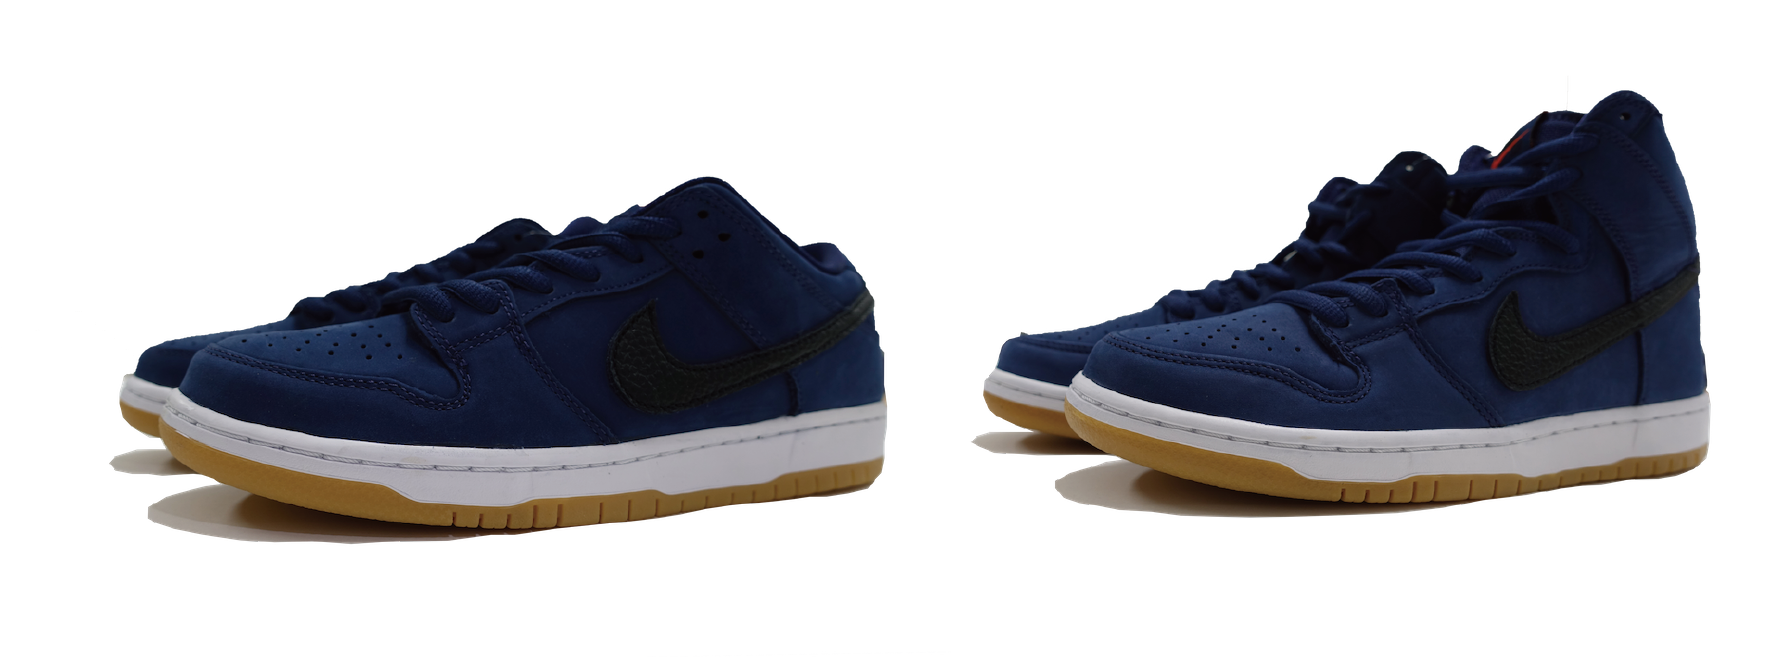 「NIKE SB DUNK LOW PRO ISO CW7463-401」「NIKE SB DUNK HIGH PRO ISO CI2692-401 」抽選応募フォーム